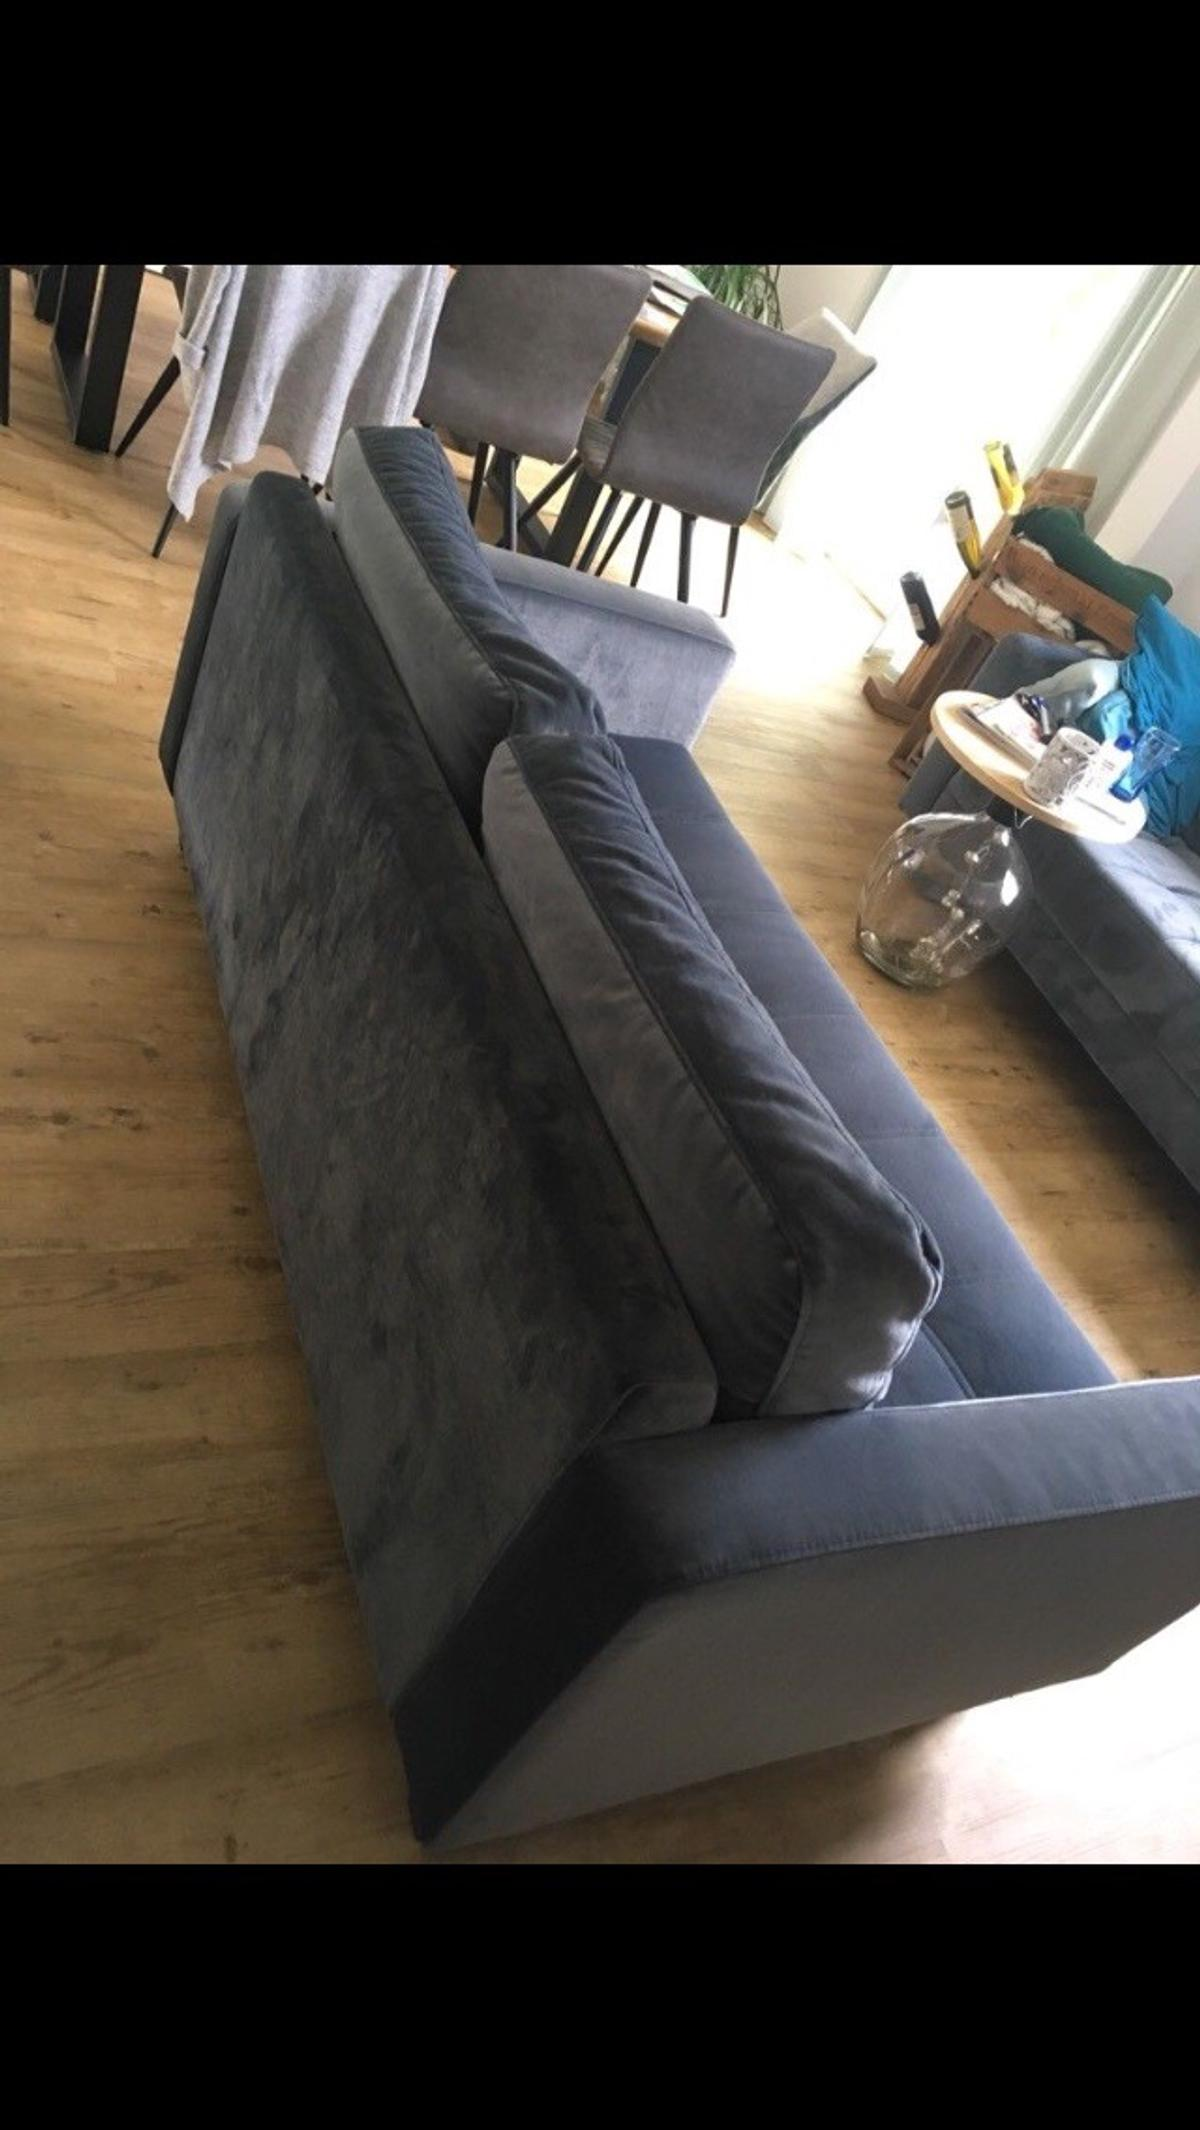 Sofa 2 Sitzer Taubengrau In 01744 Dippoldiswalde For 450 00 For Sale Shpock